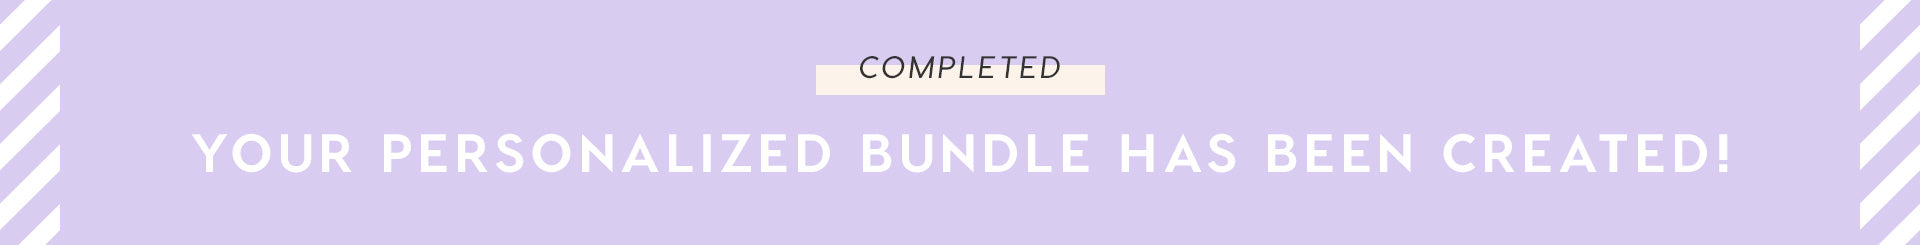 Your bundle has been created